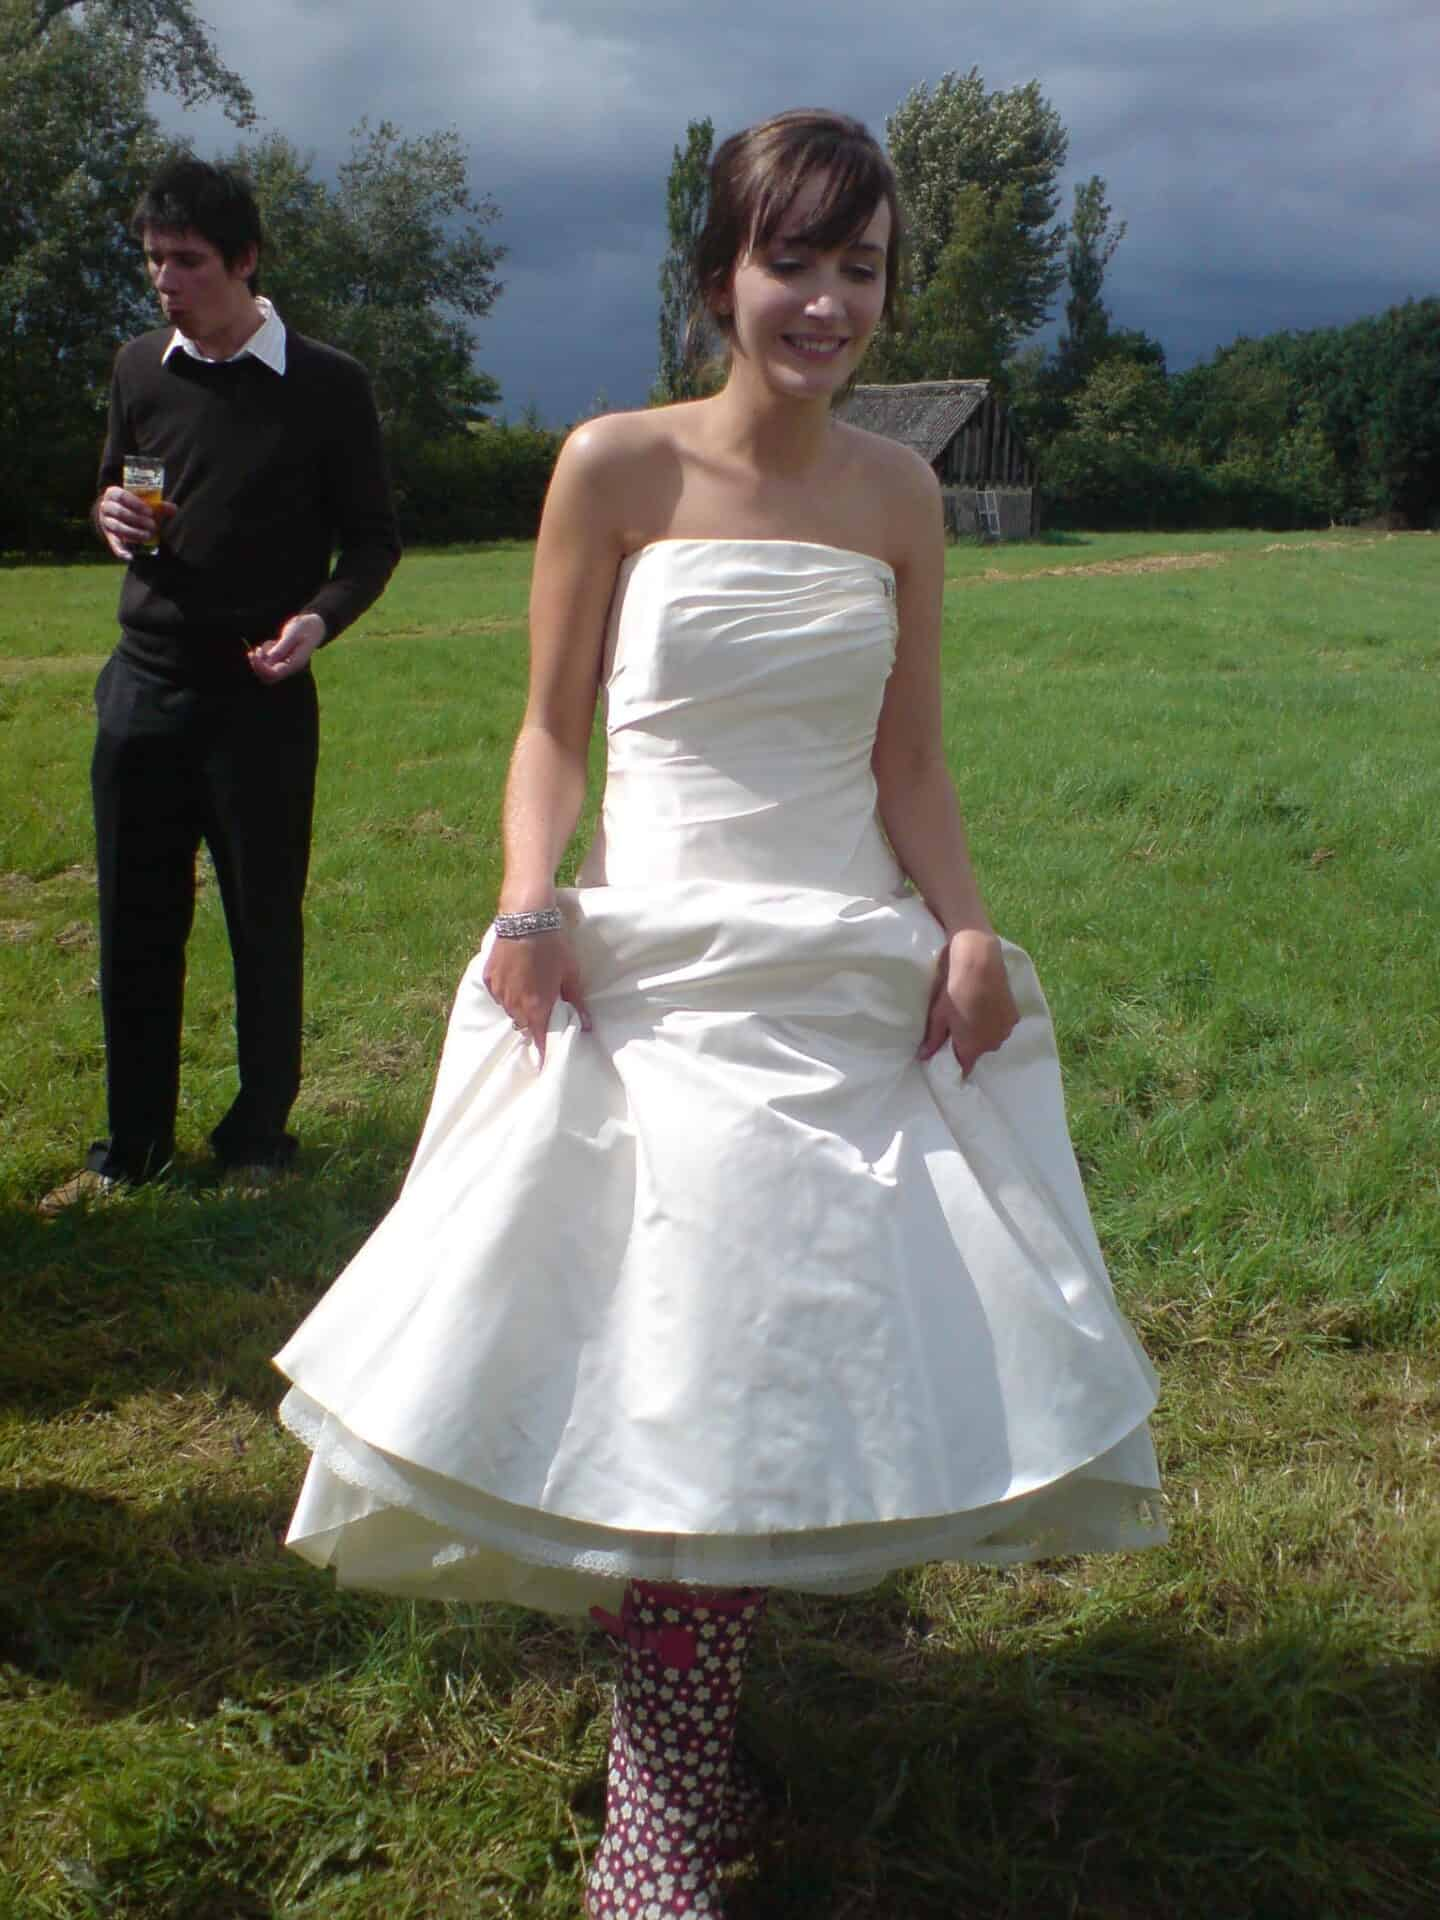 Becky in a wedding dress and wellies